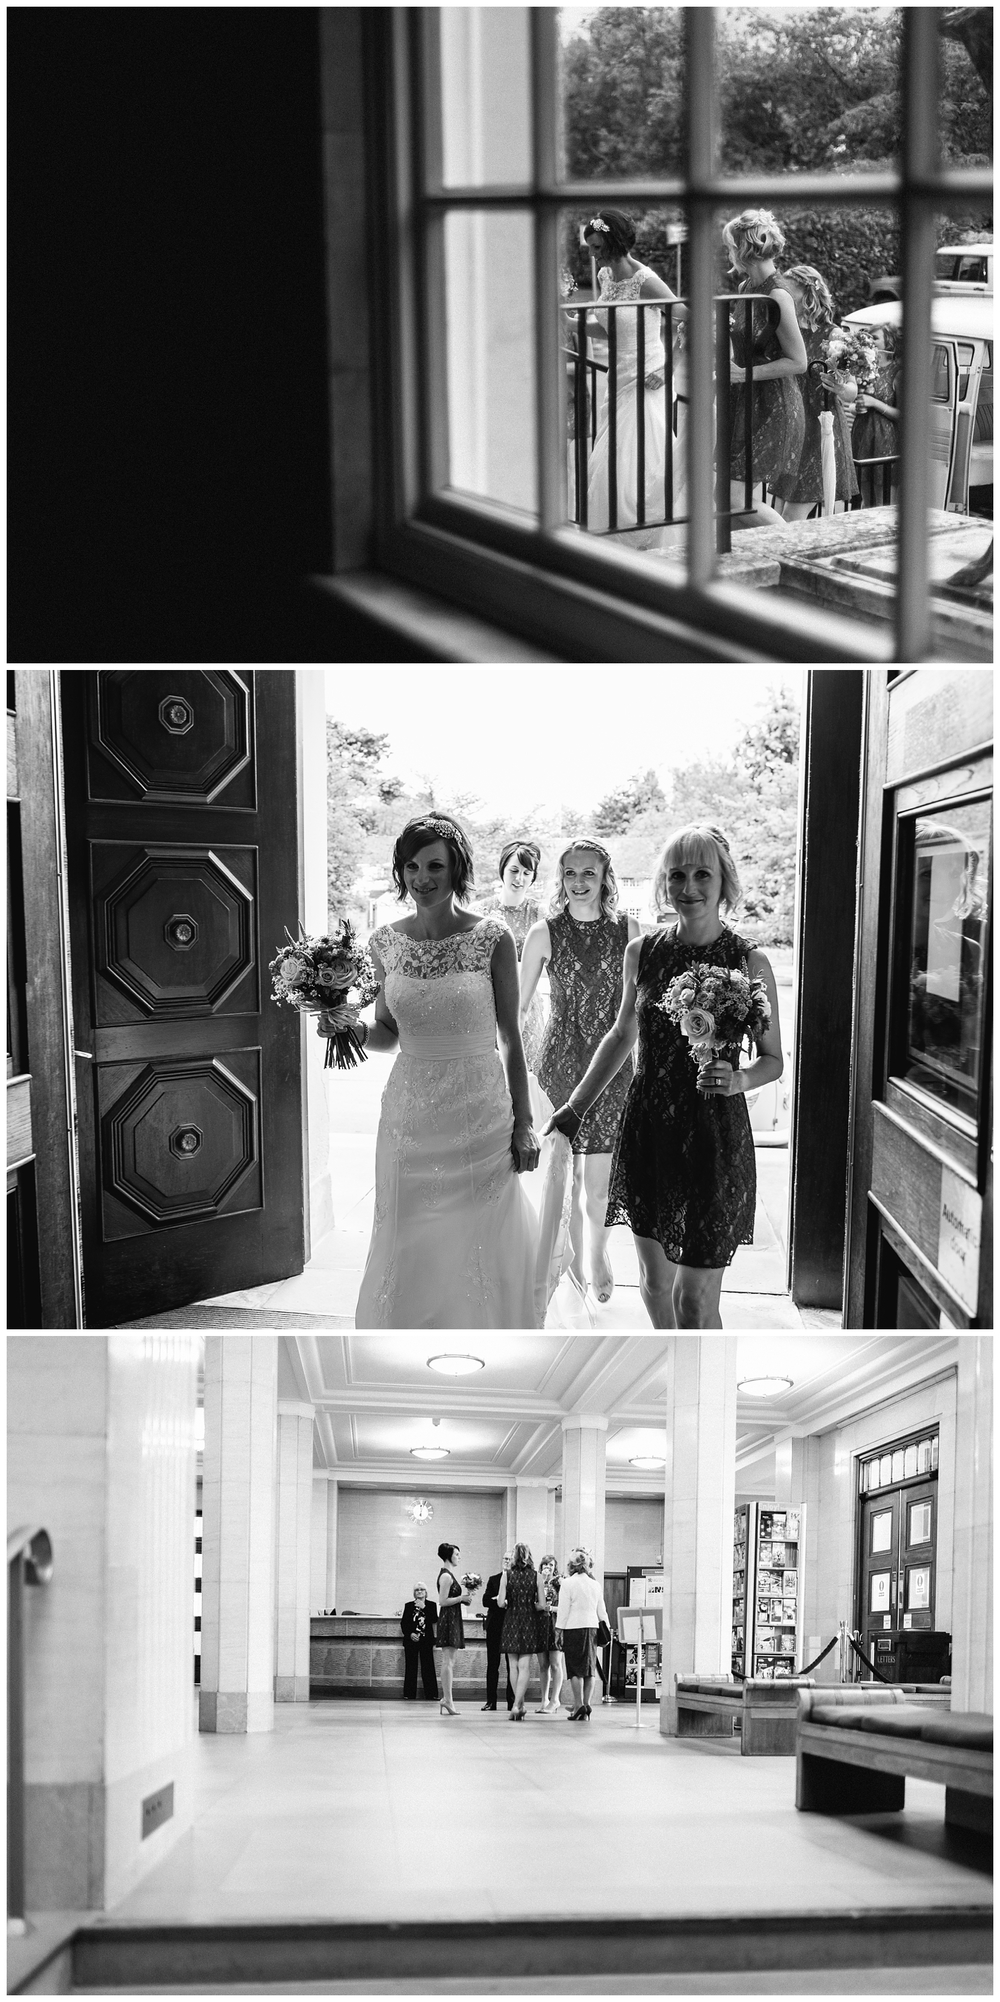 Nikki_Cooper_Photography_Emma&Owen_Wedding_Photos_Hertfordshire_1057.jpg